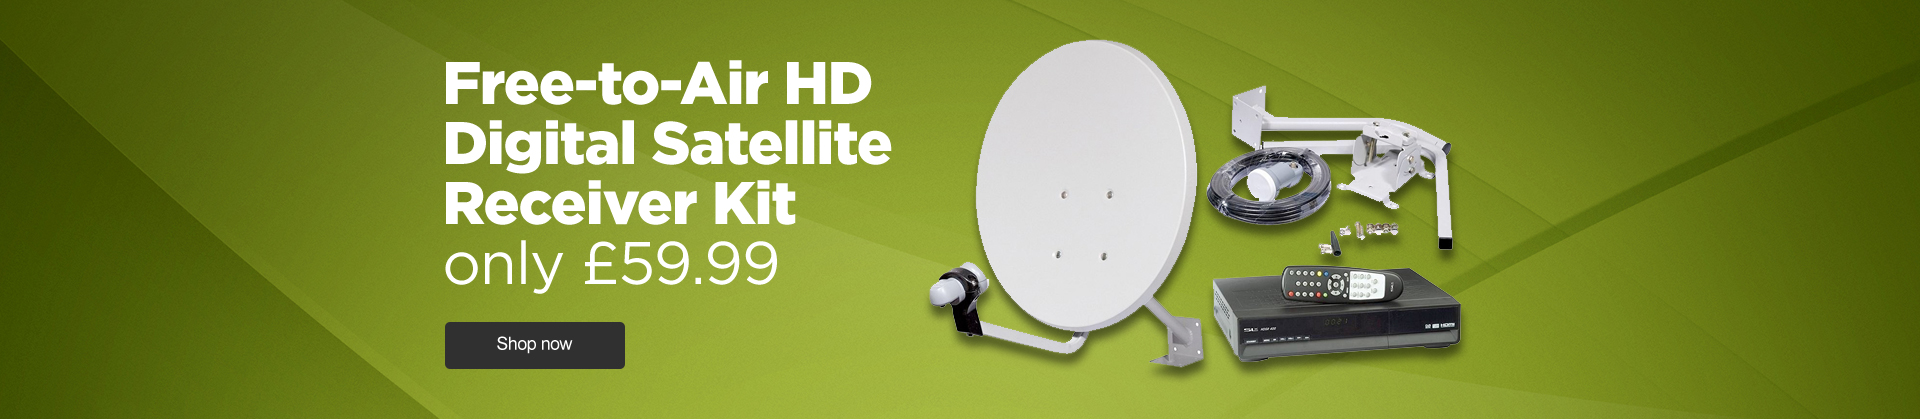 Free to air HD Satellite Kit